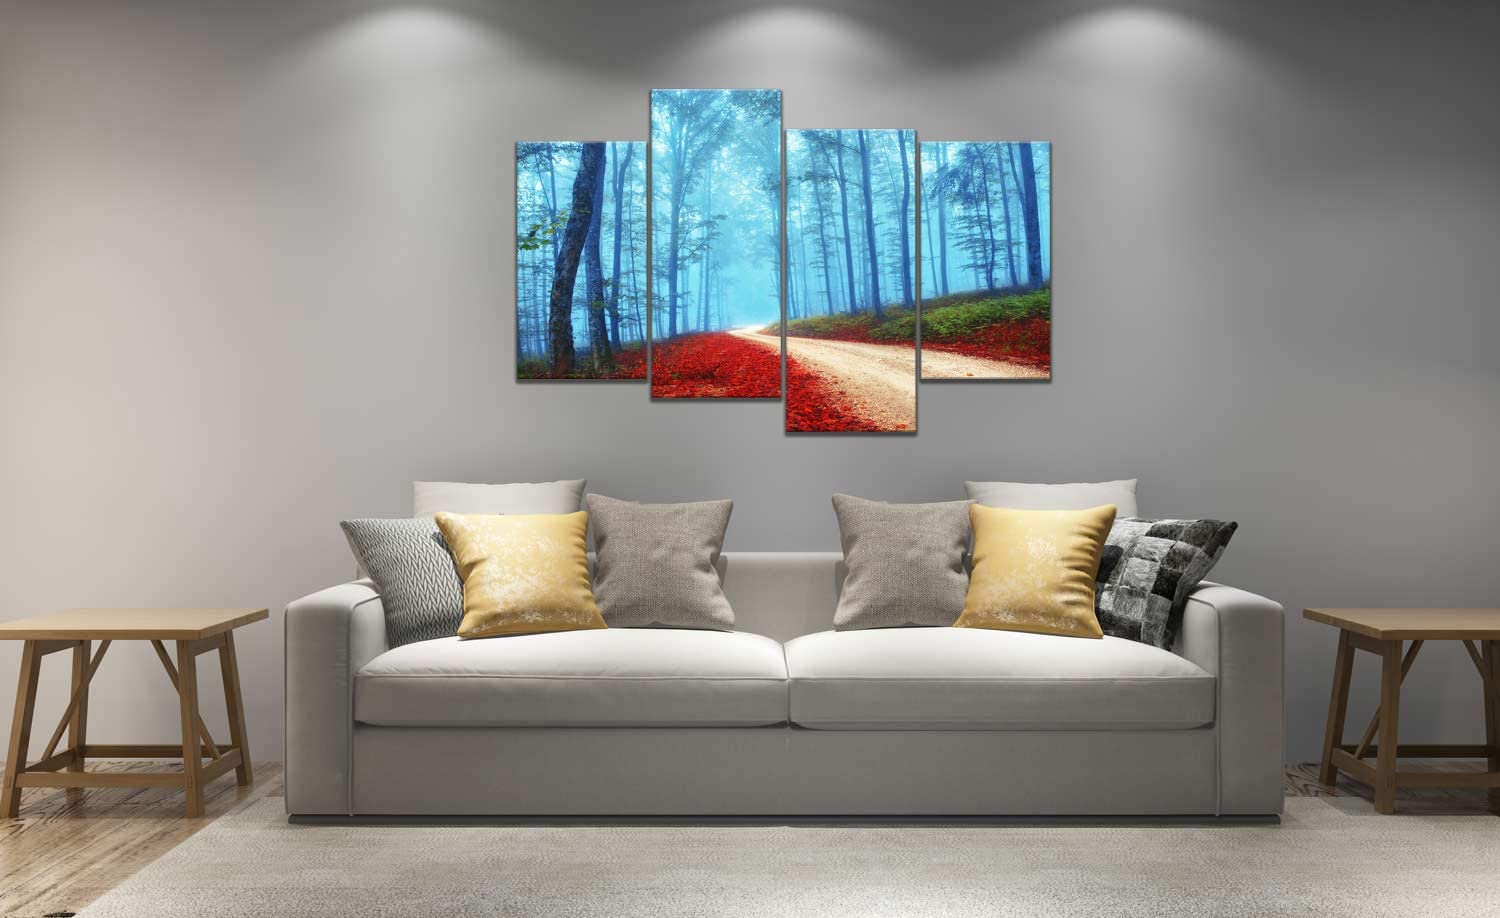 bed in a wall design woodland bedroom decor forest themed.htm amazon com muyu art 4 pieces abstract giclee prints picture wall  amazon com muyu art 4 pieces abstract